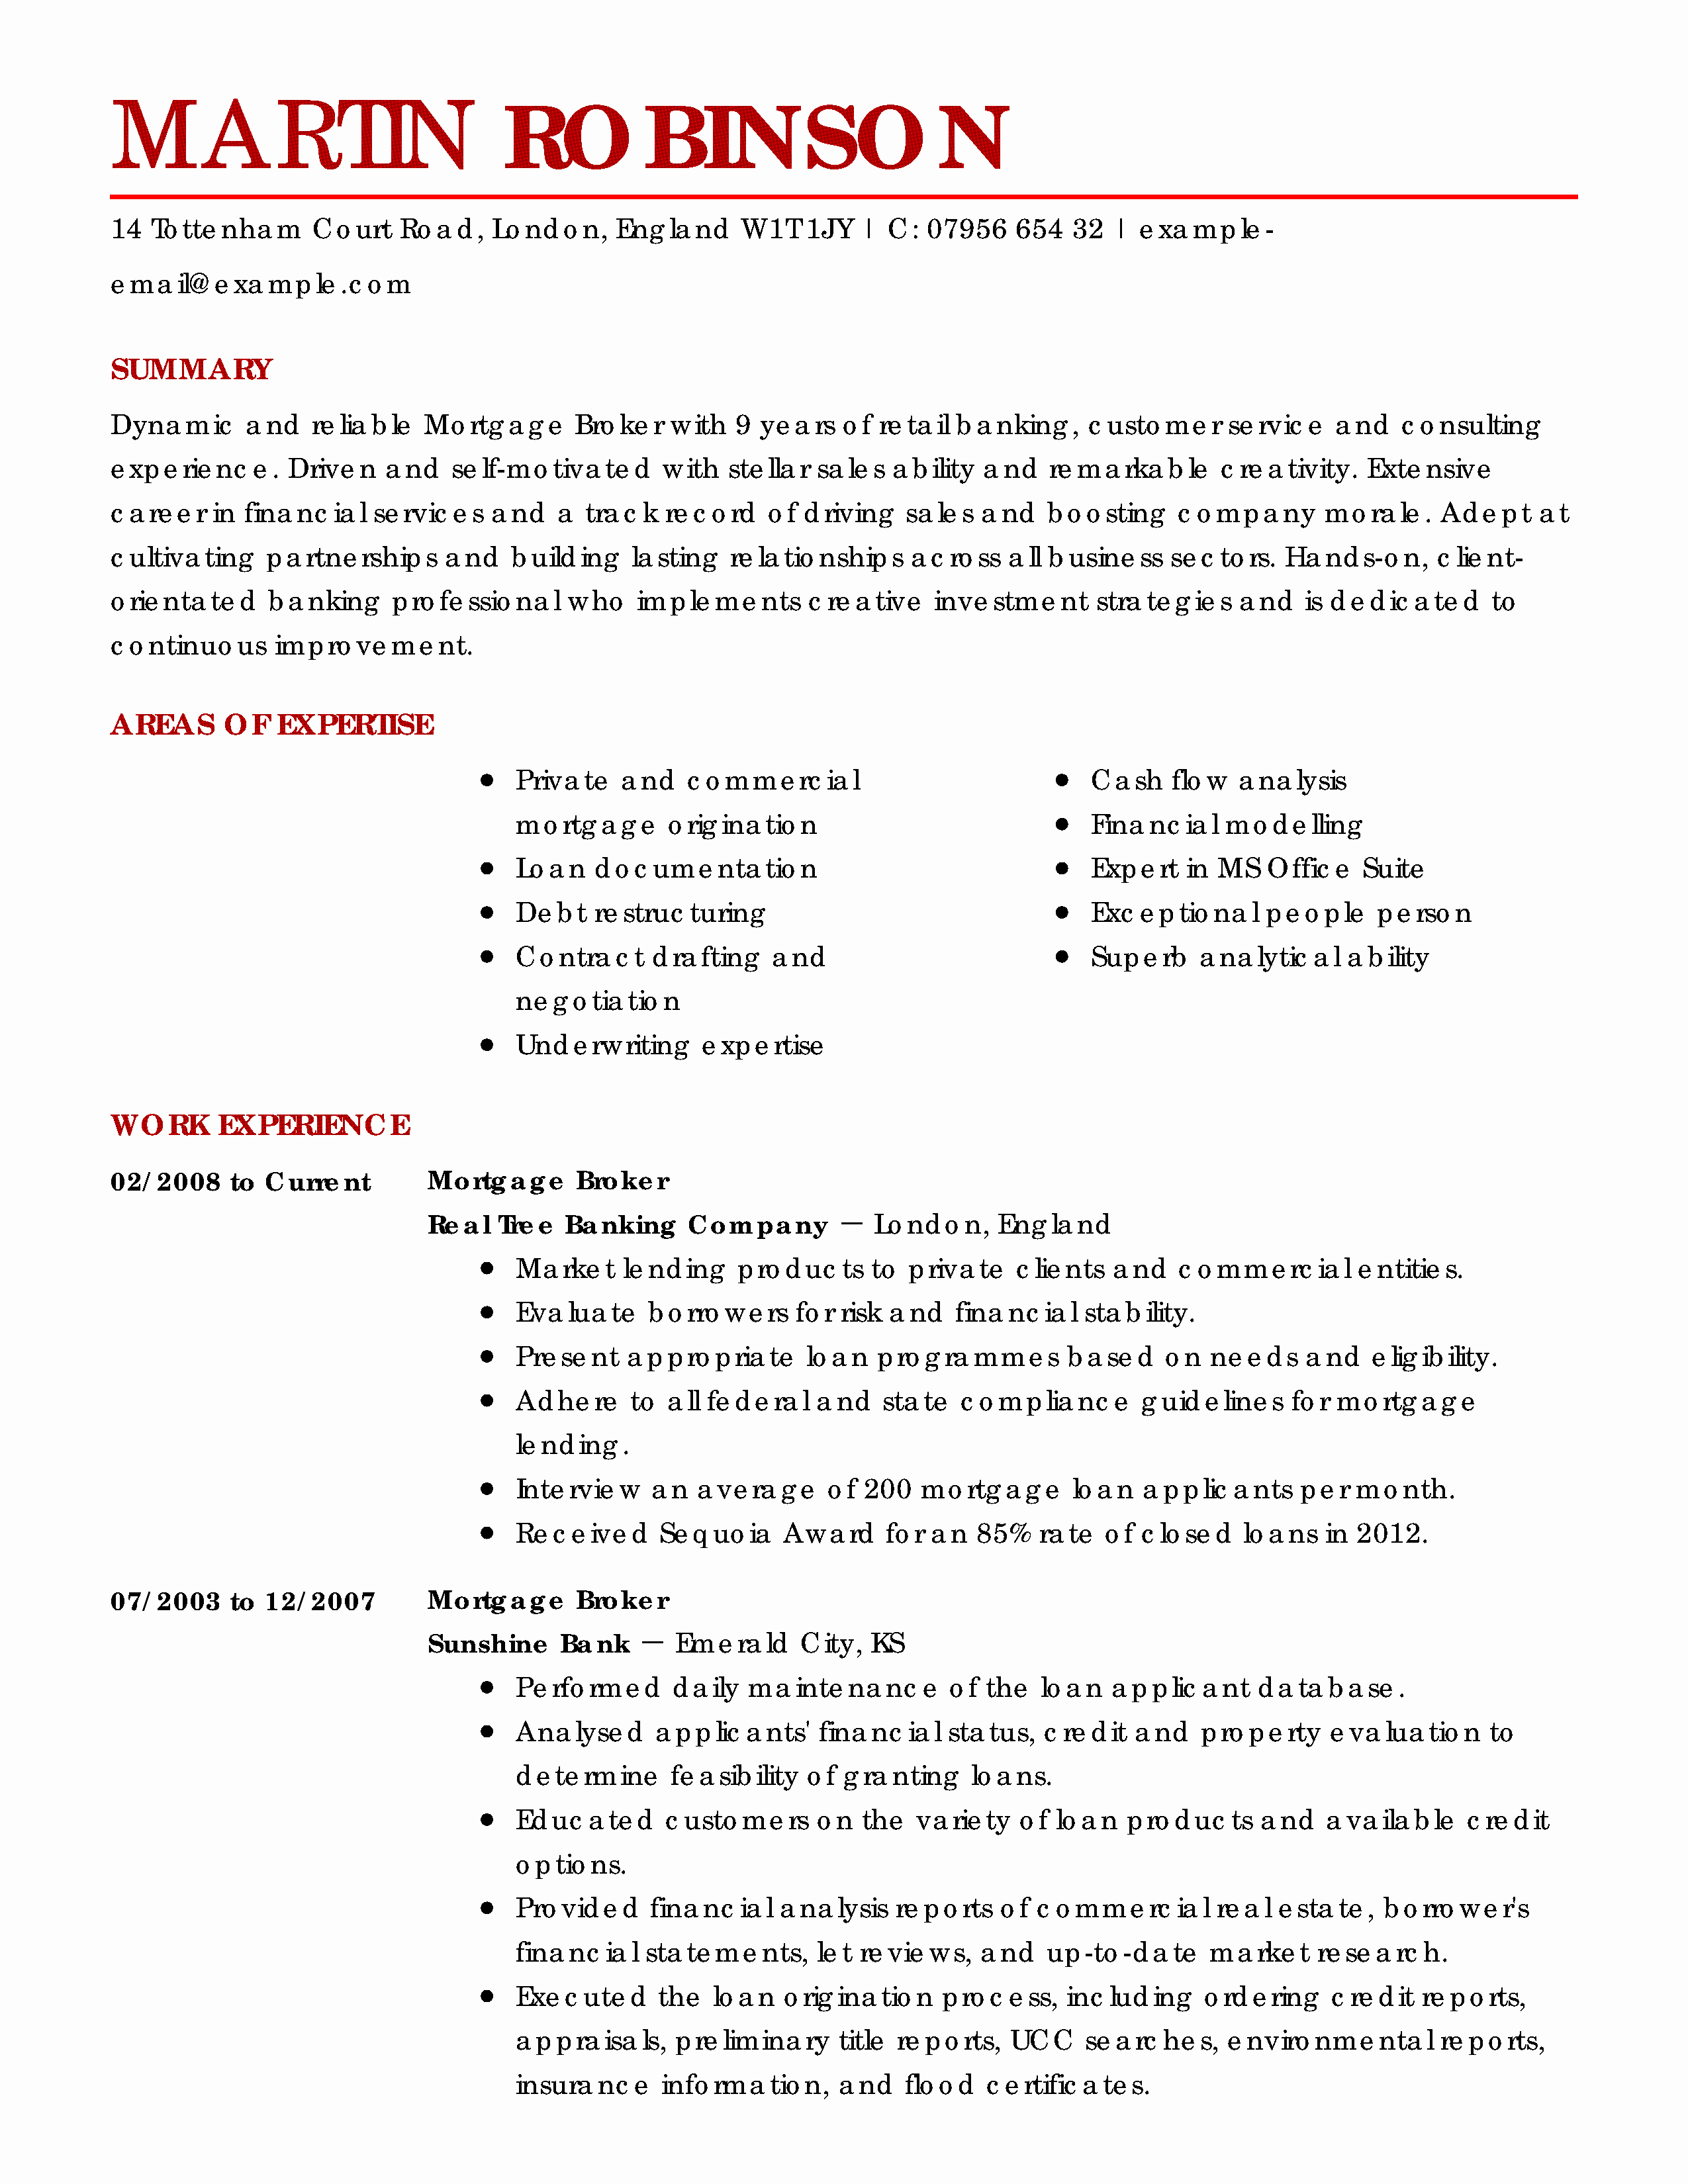 Real Estate Resume Templates Inspirational Amazing Real Estate Resume Examples to Get You Hired